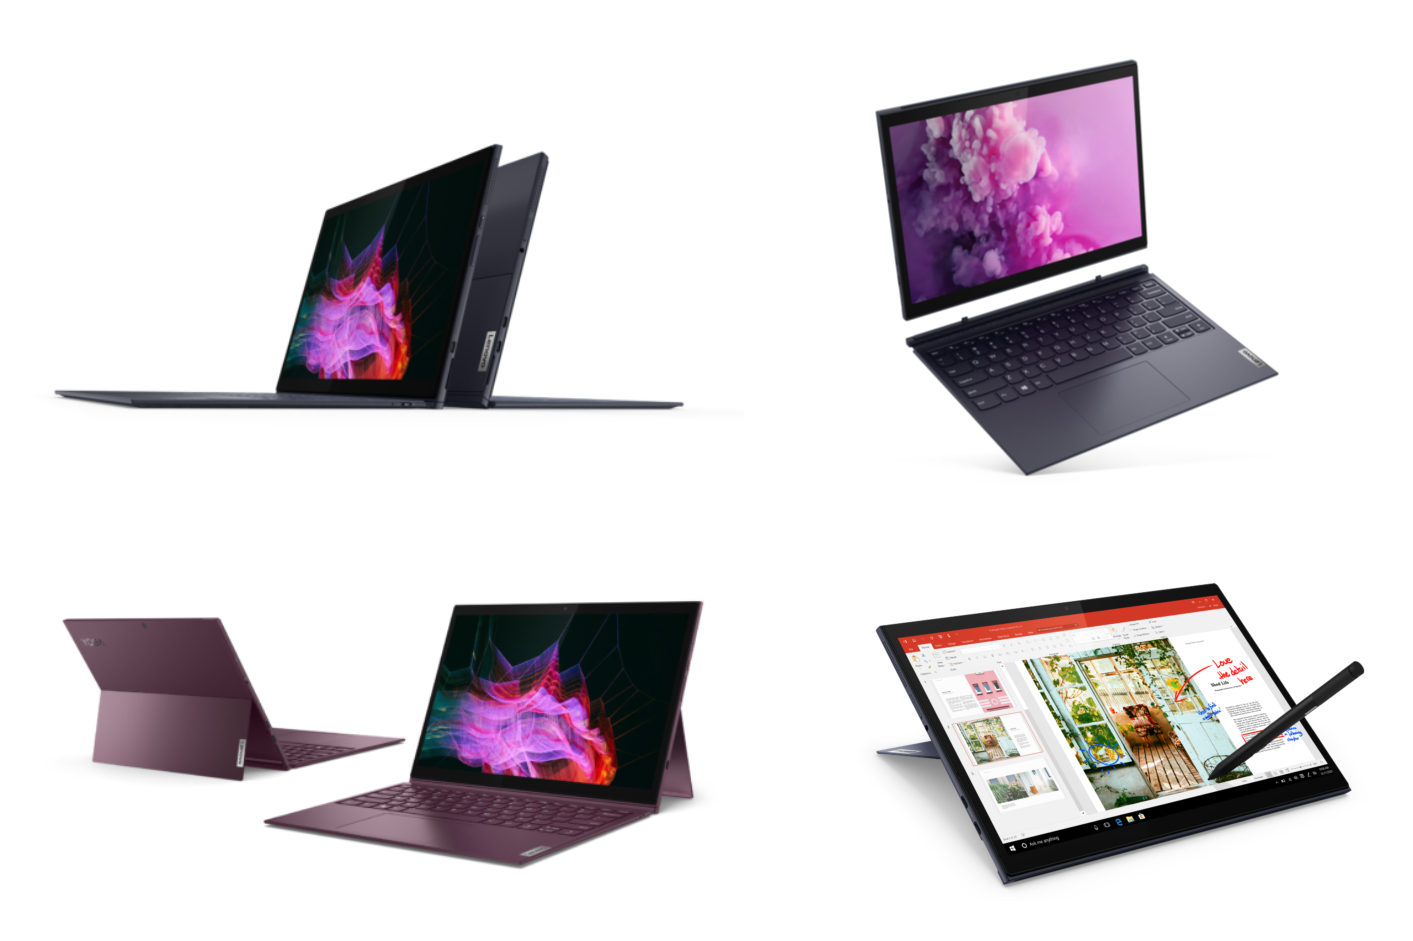 Lenovo's latest Windows 10 tablets arrive with detachable keyboards